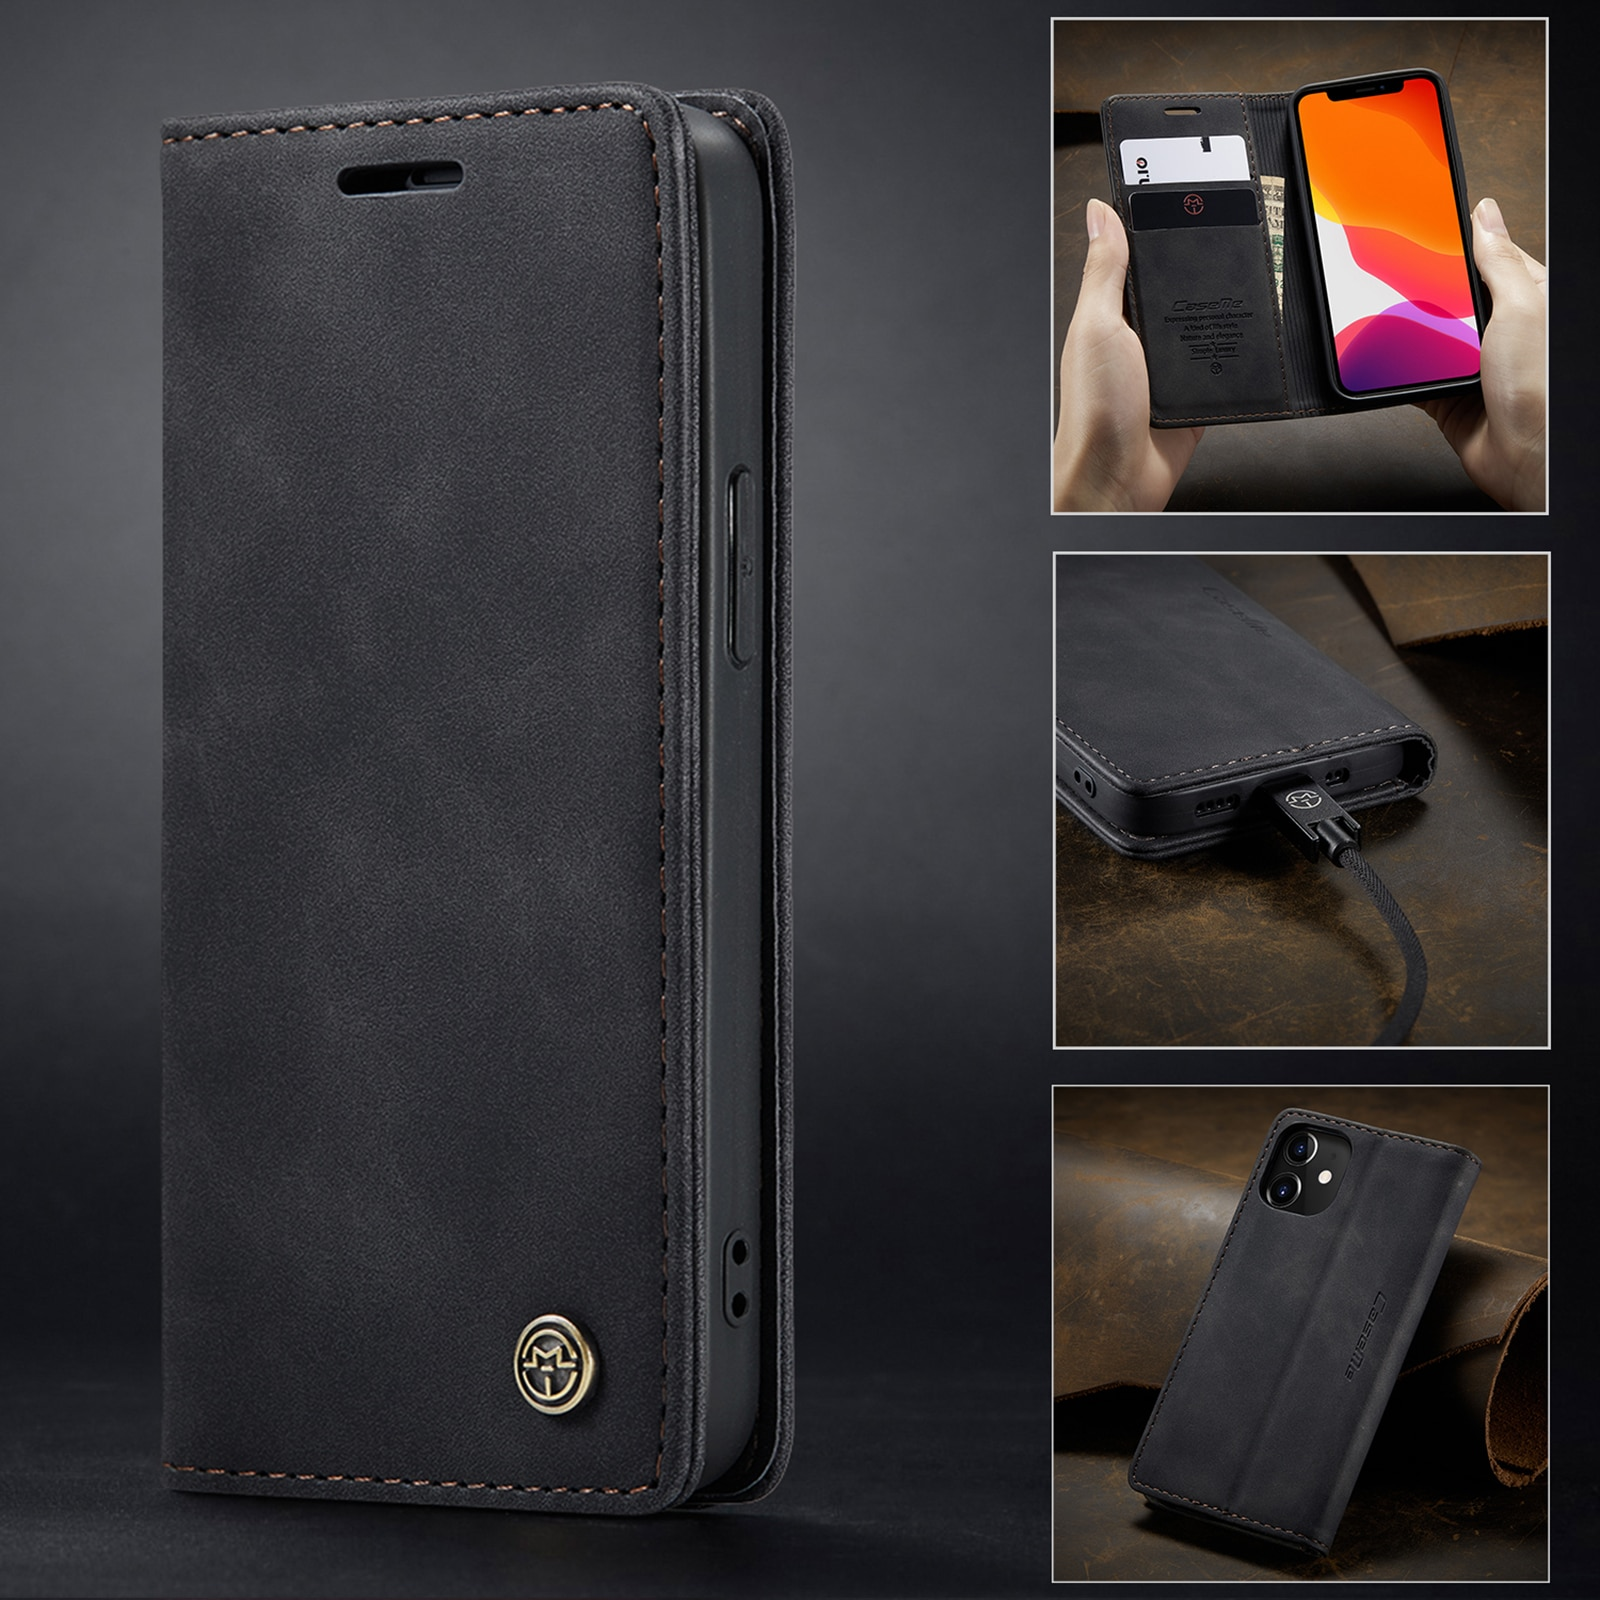 Hc3b3d4009944457d8ccea394372cc7cah - Magnetic Leather Flip Case For iPhone 12 / Pro / Pro Max PU Leather Fitted Bumper Soft Retro Flip Case Book Wallet Cover